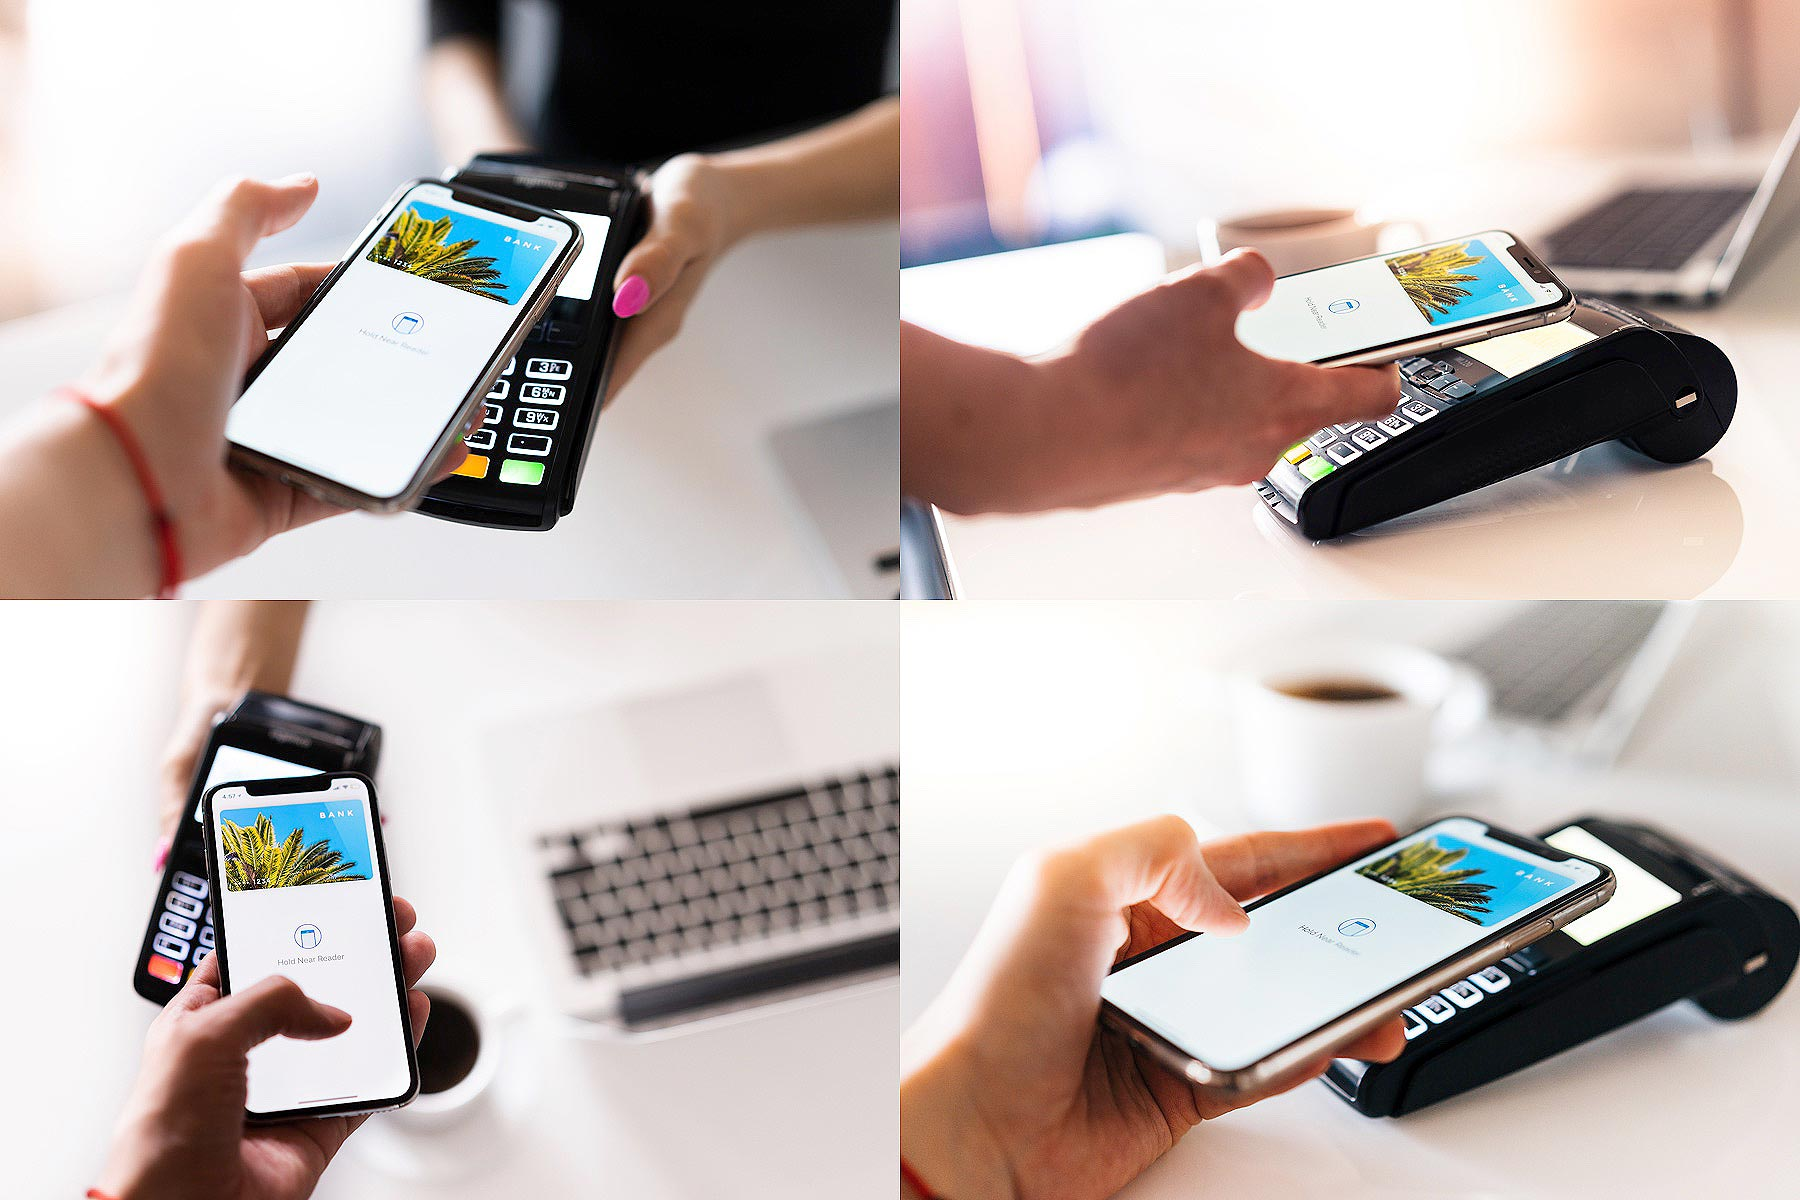 Paying with Smartphone Stock Photos Collection by picjumbo